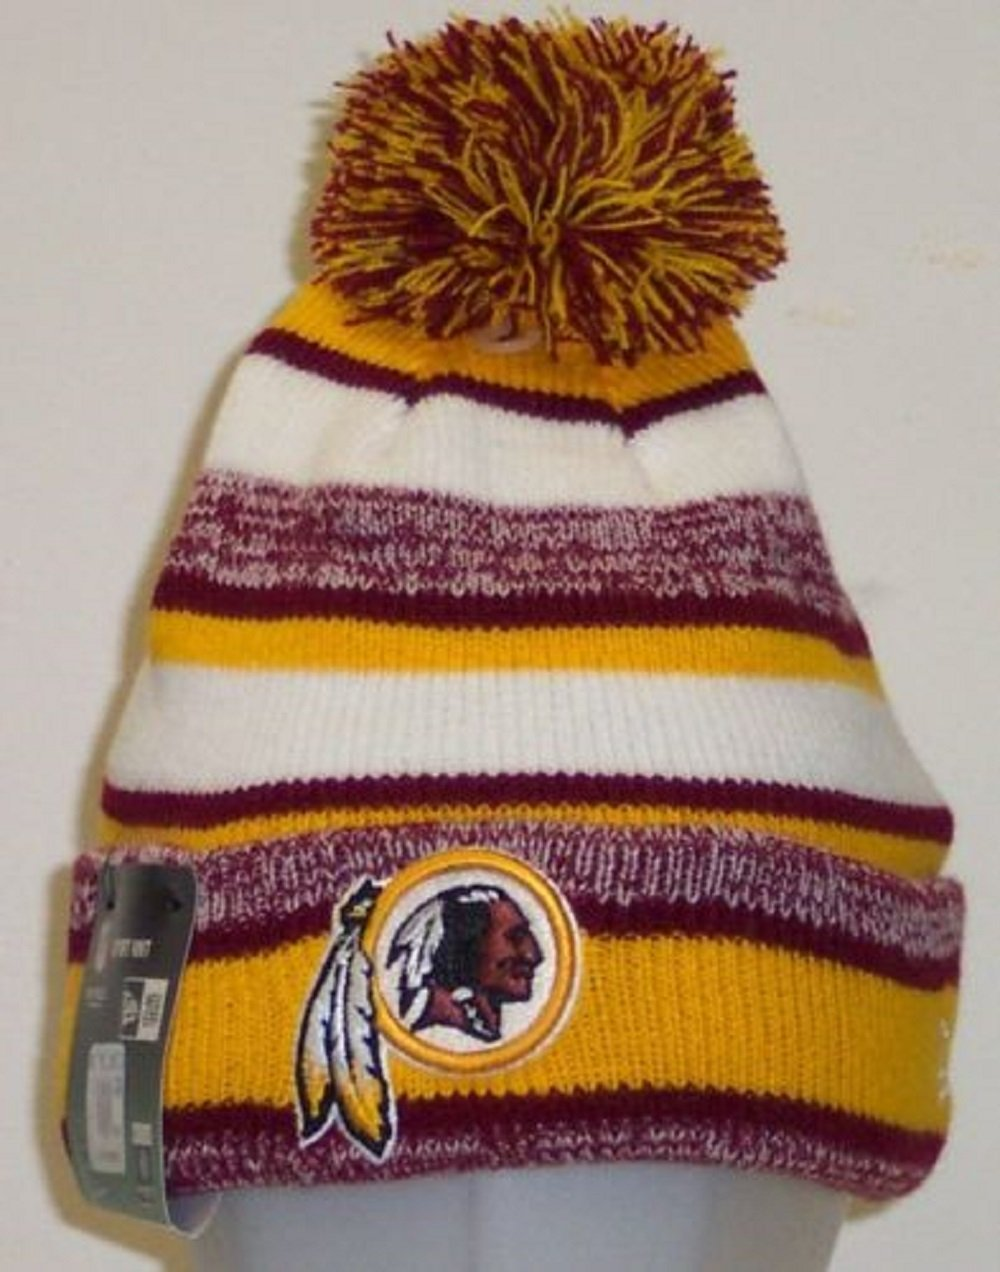 95accdb476b Get Quotations · Washington Redskins Official NFL 2014 On Field Sport Knit  Cap Winter Hat   Toque